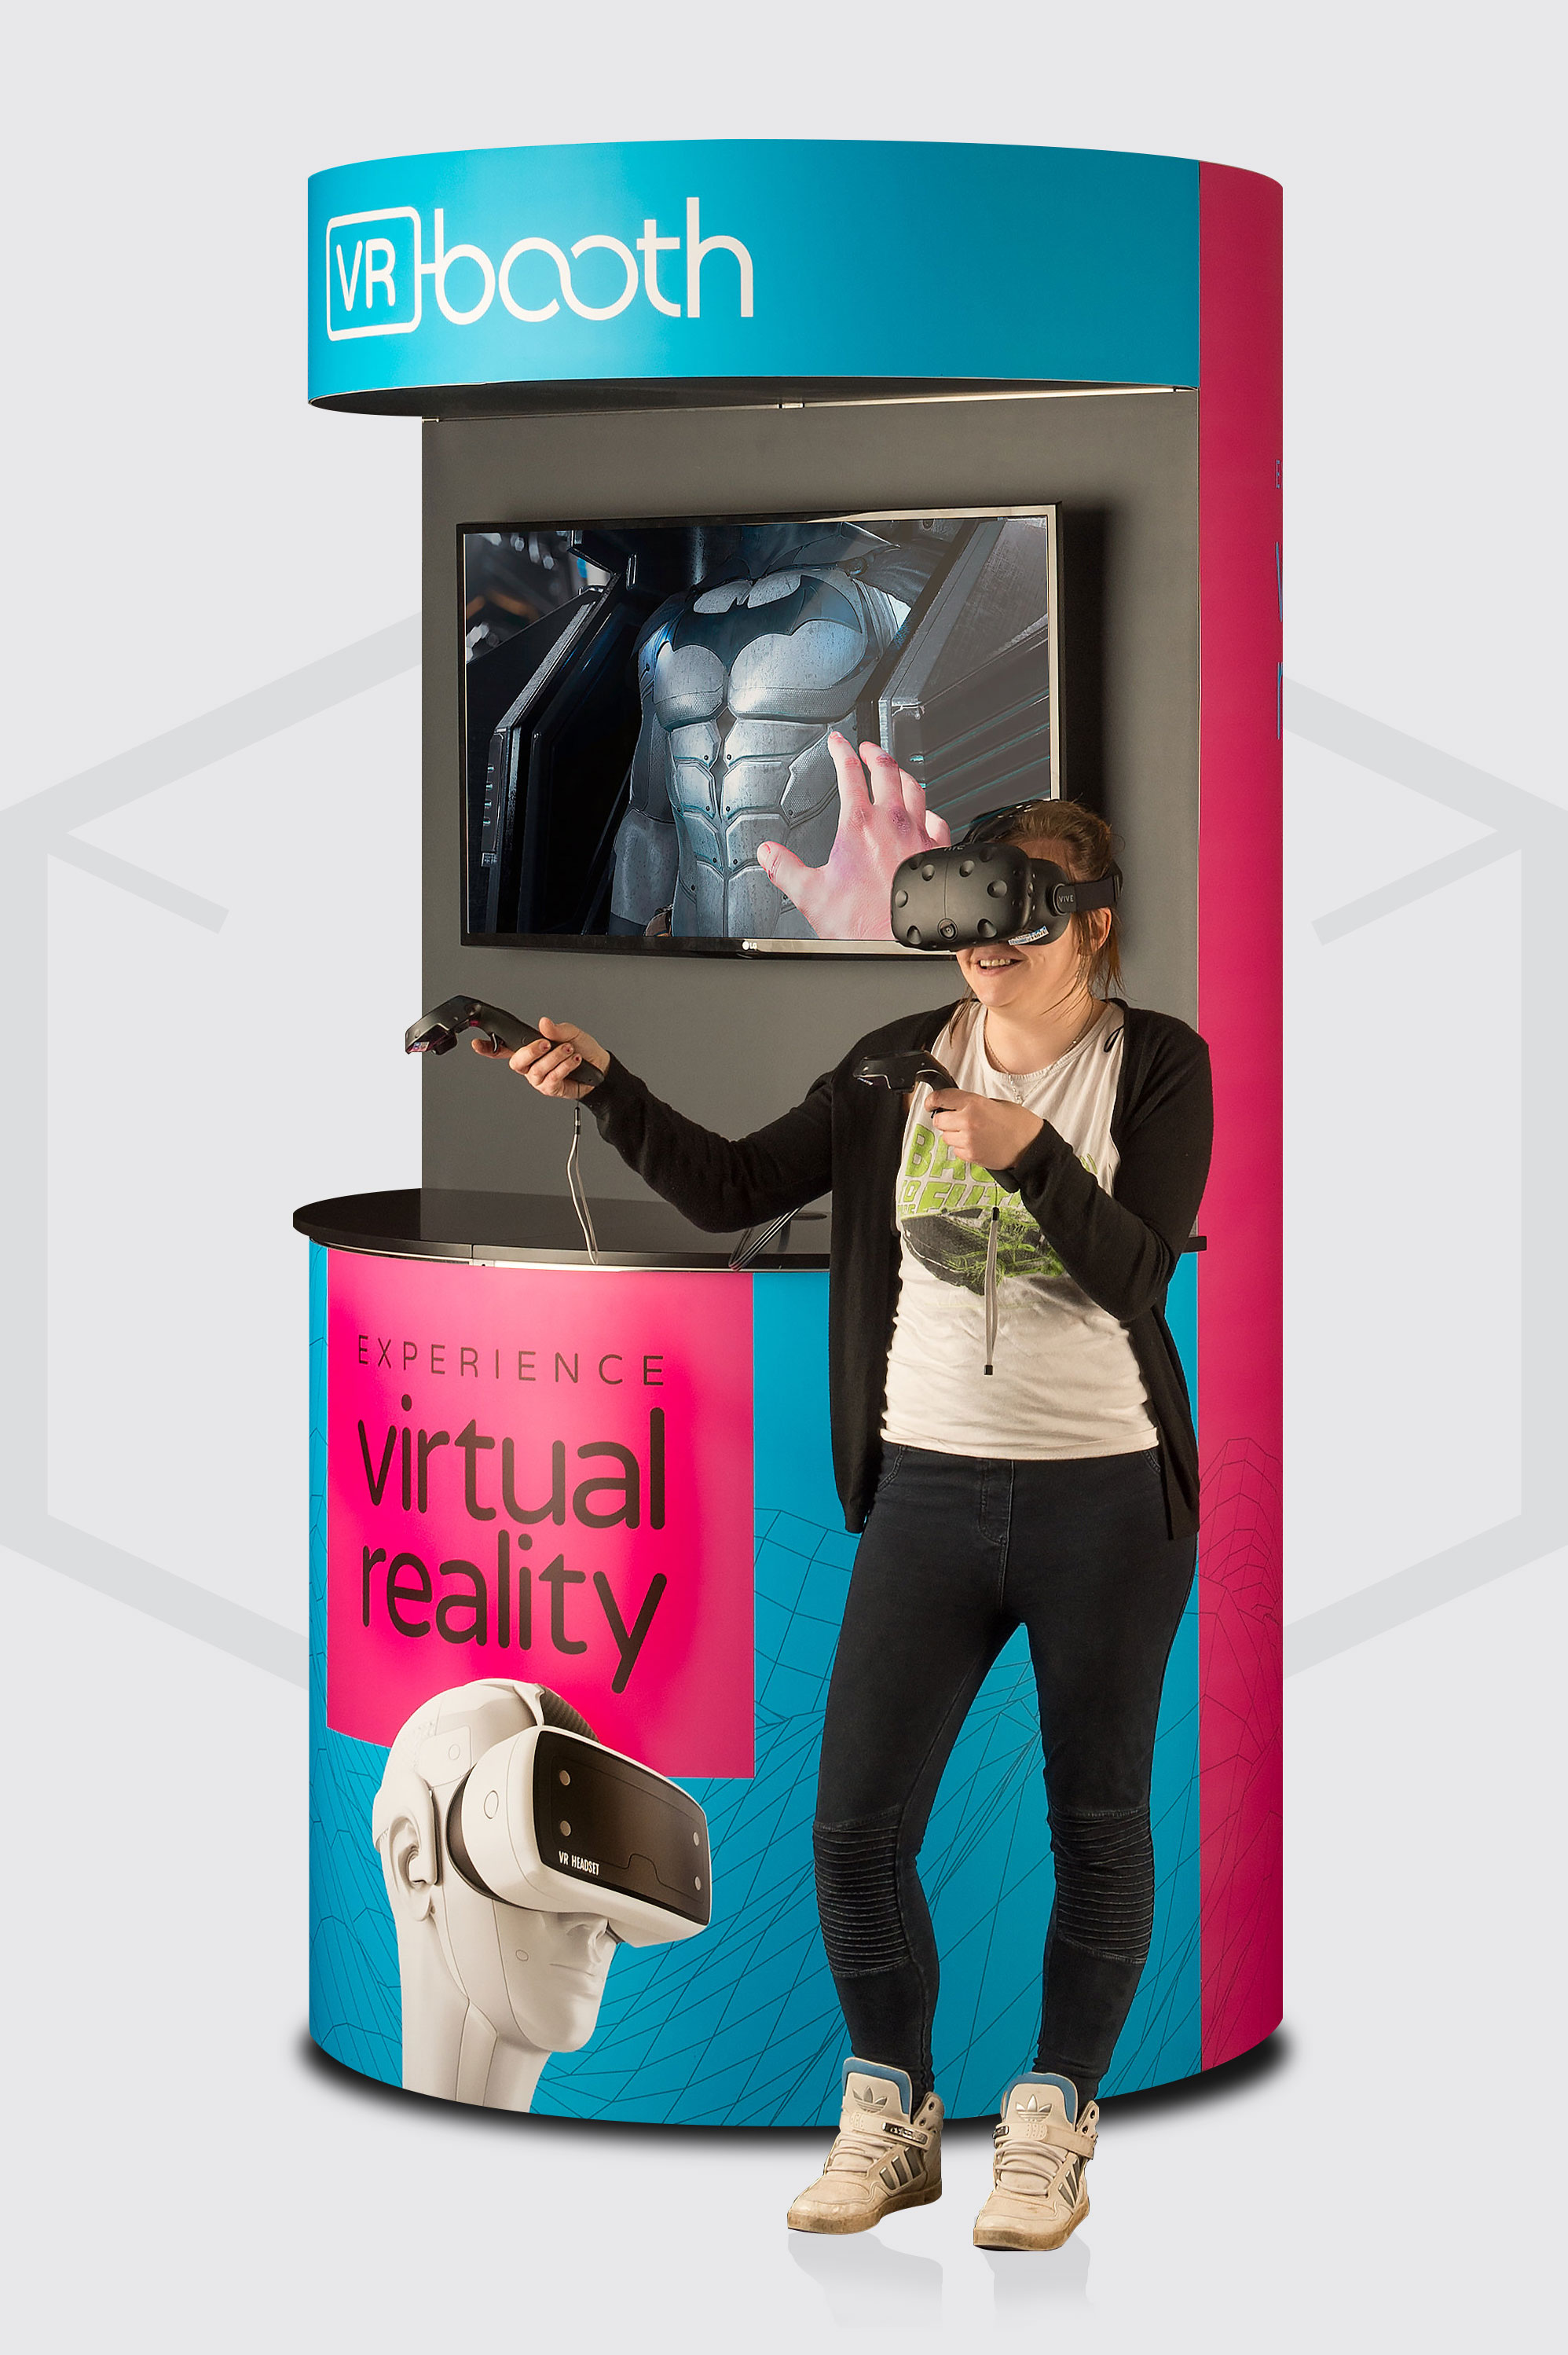 Buy a VR Booth